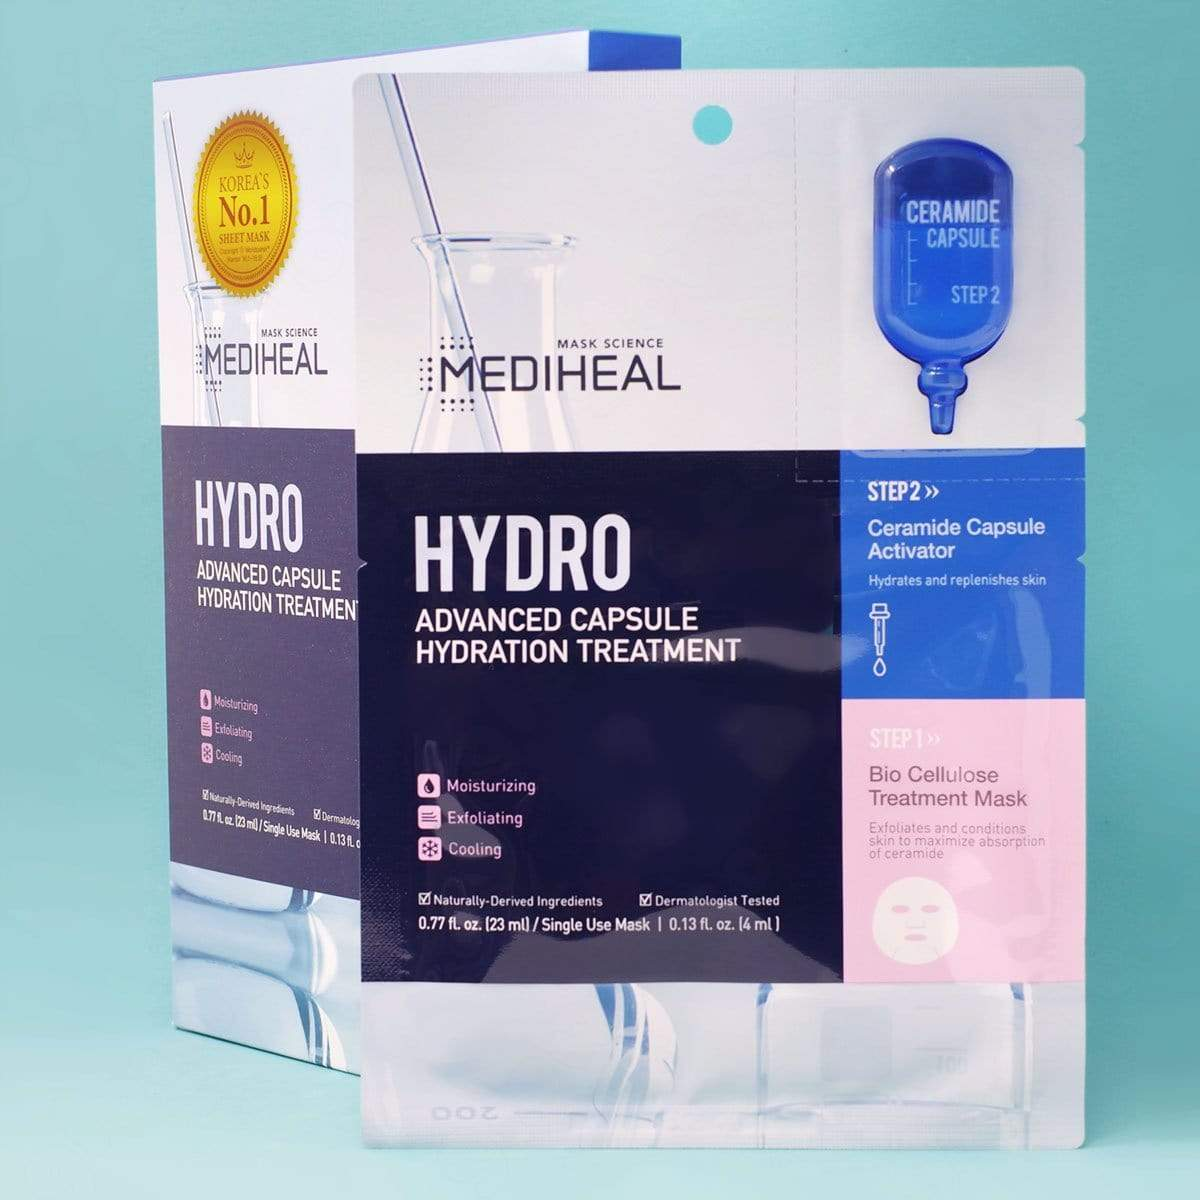 MEDIHEAL Hydro Advanced Capsule Hydration Treatment